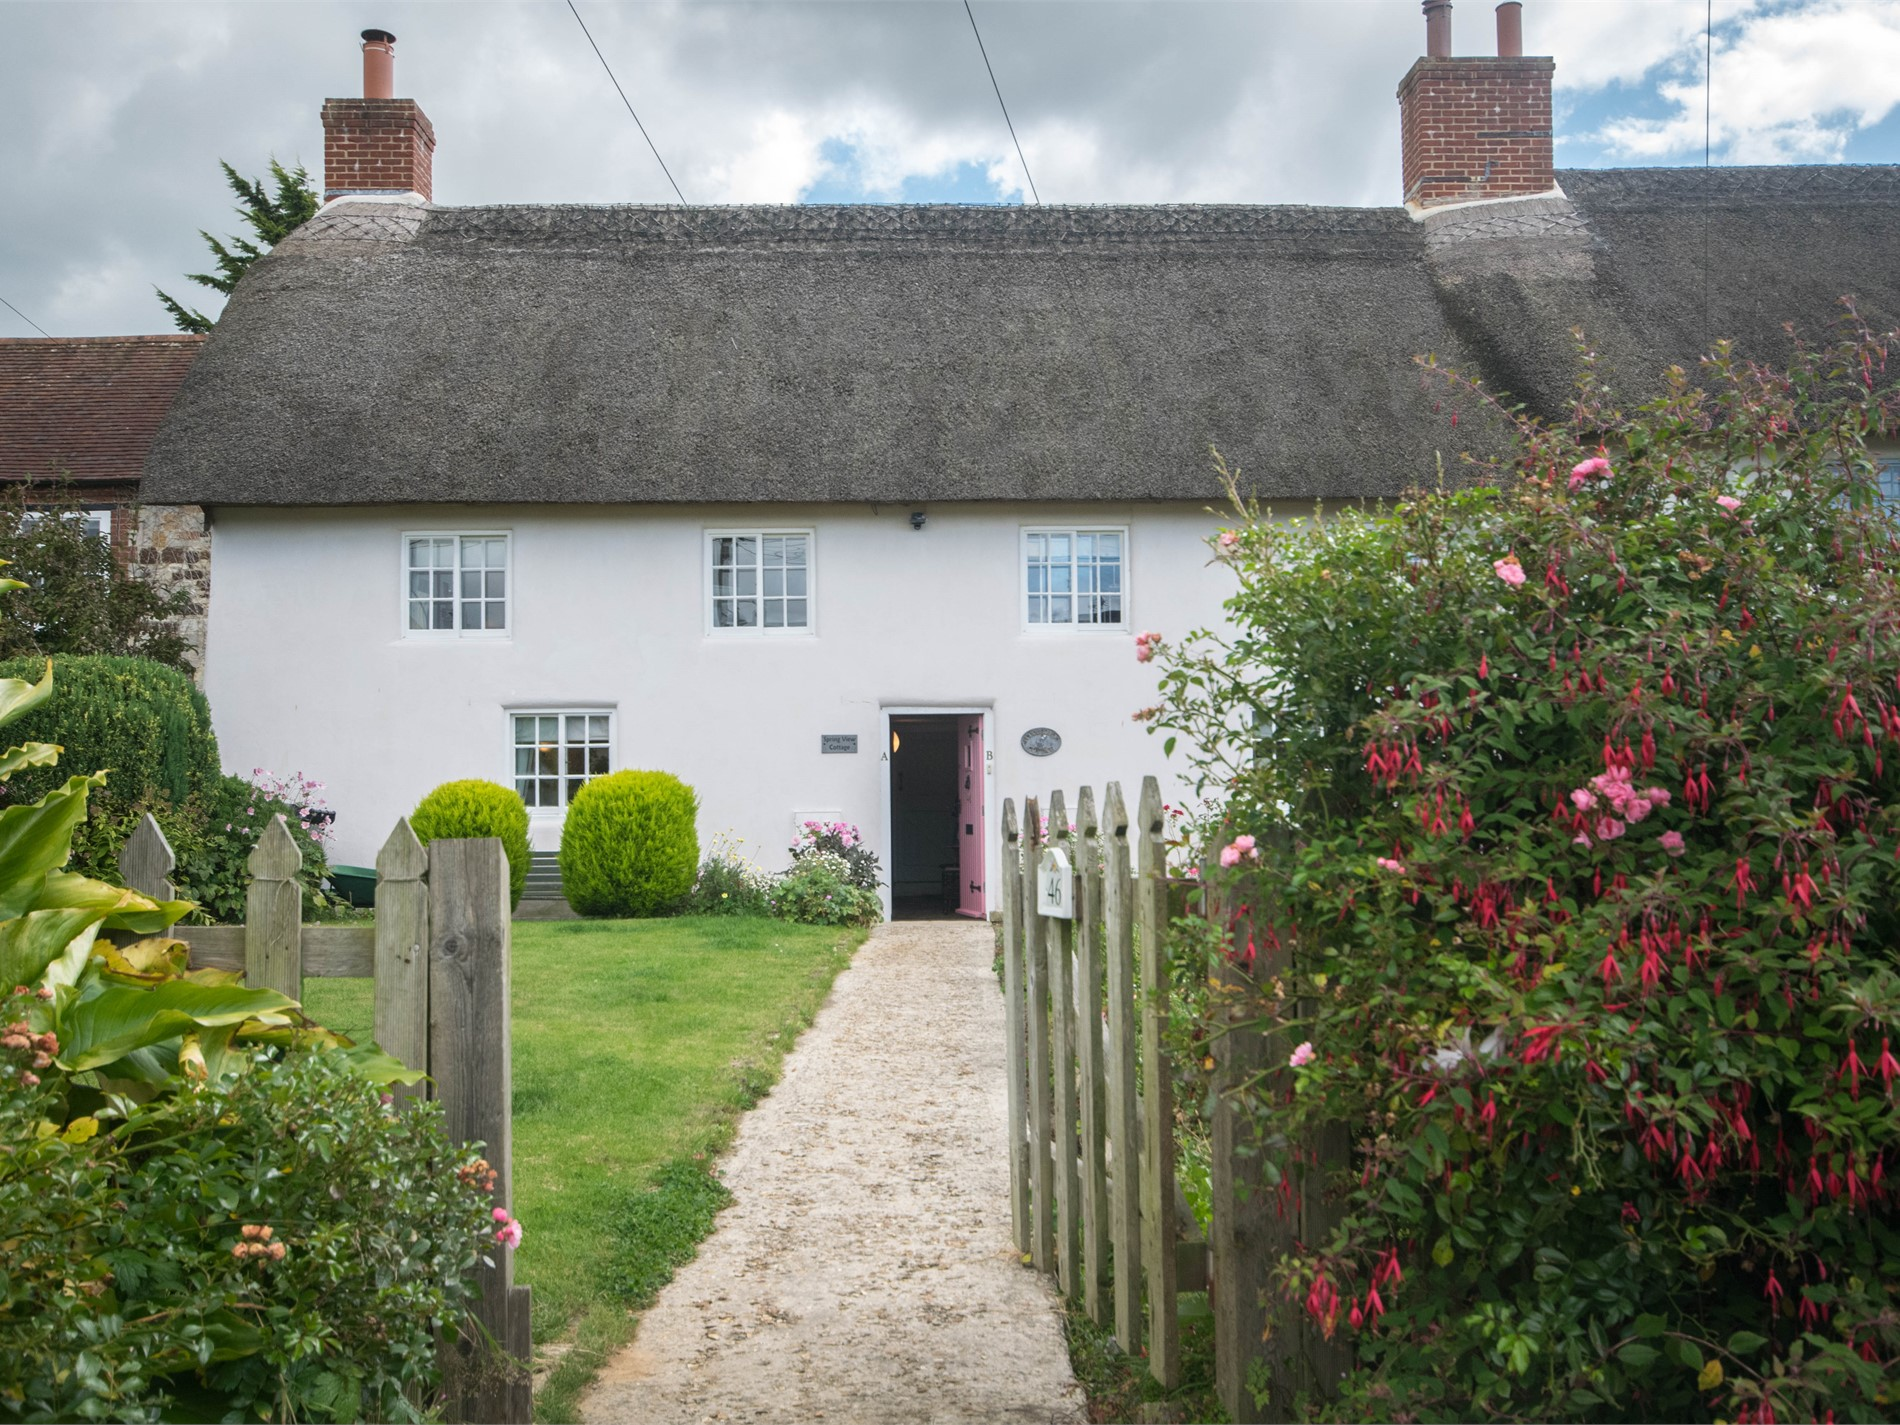 1 Bedroom Cottage in Wareham, Dorset and Somerset